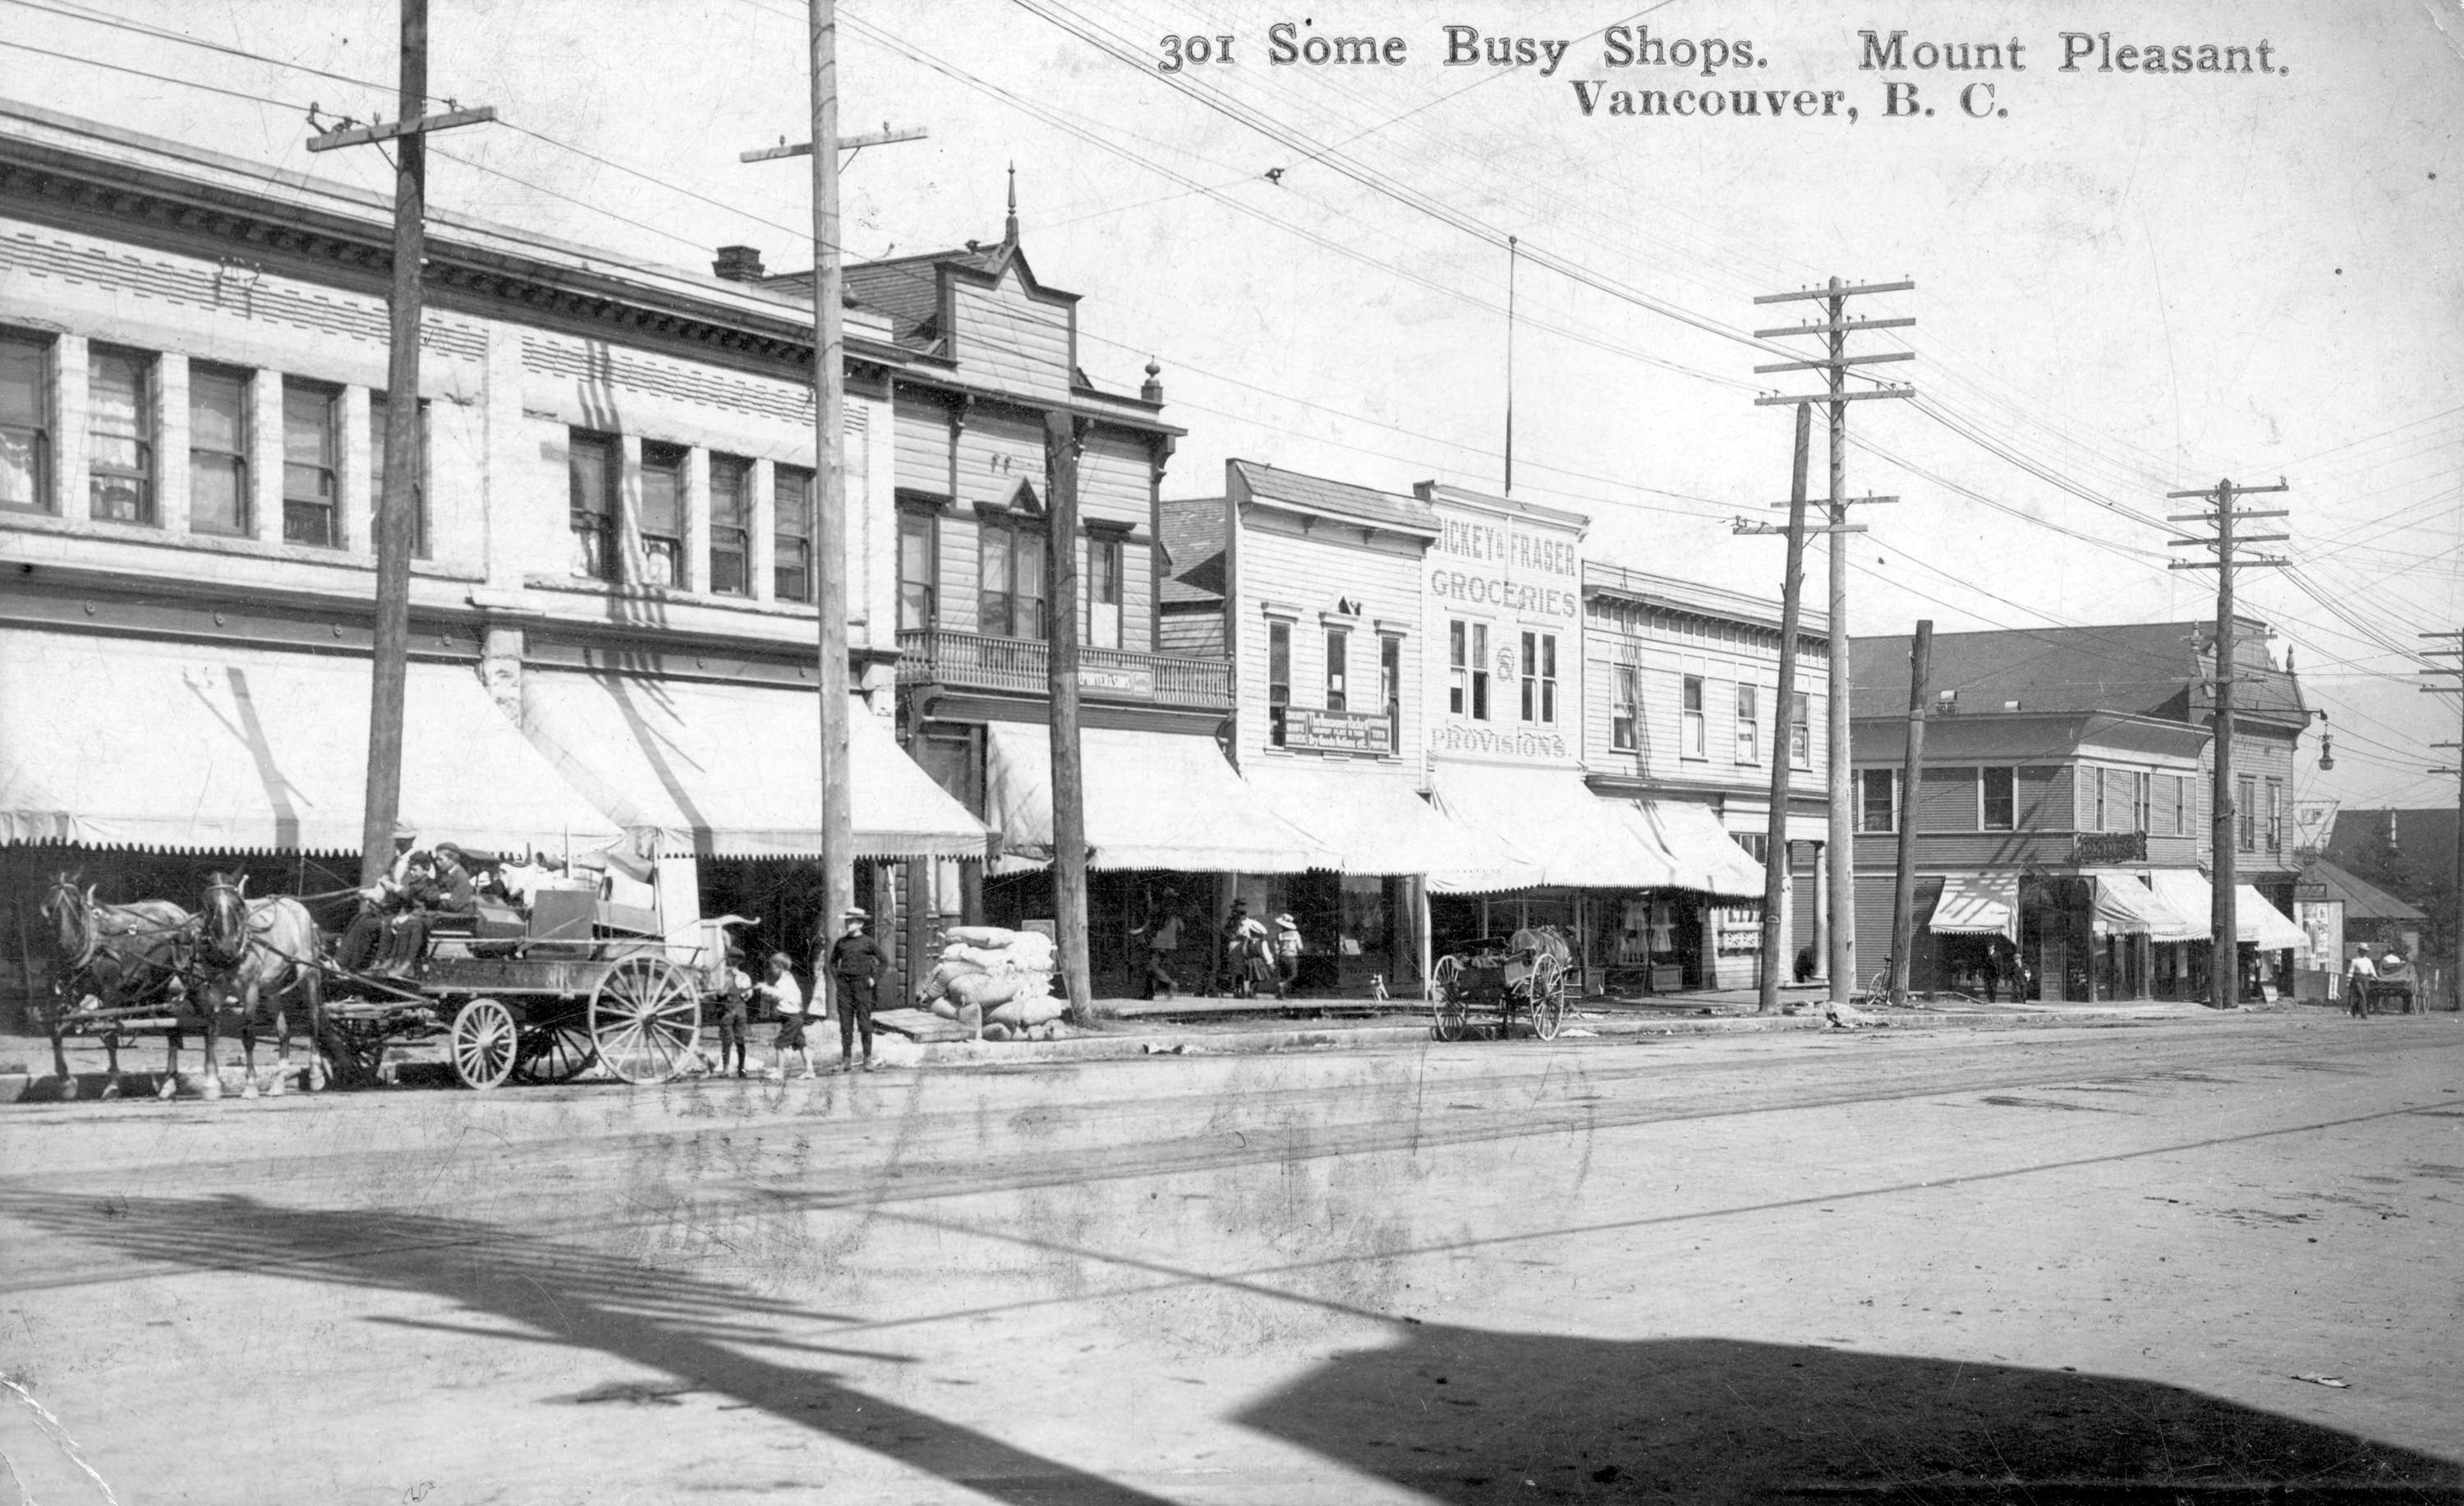 1200px version of MountPleasant-1908-Shops.jpg